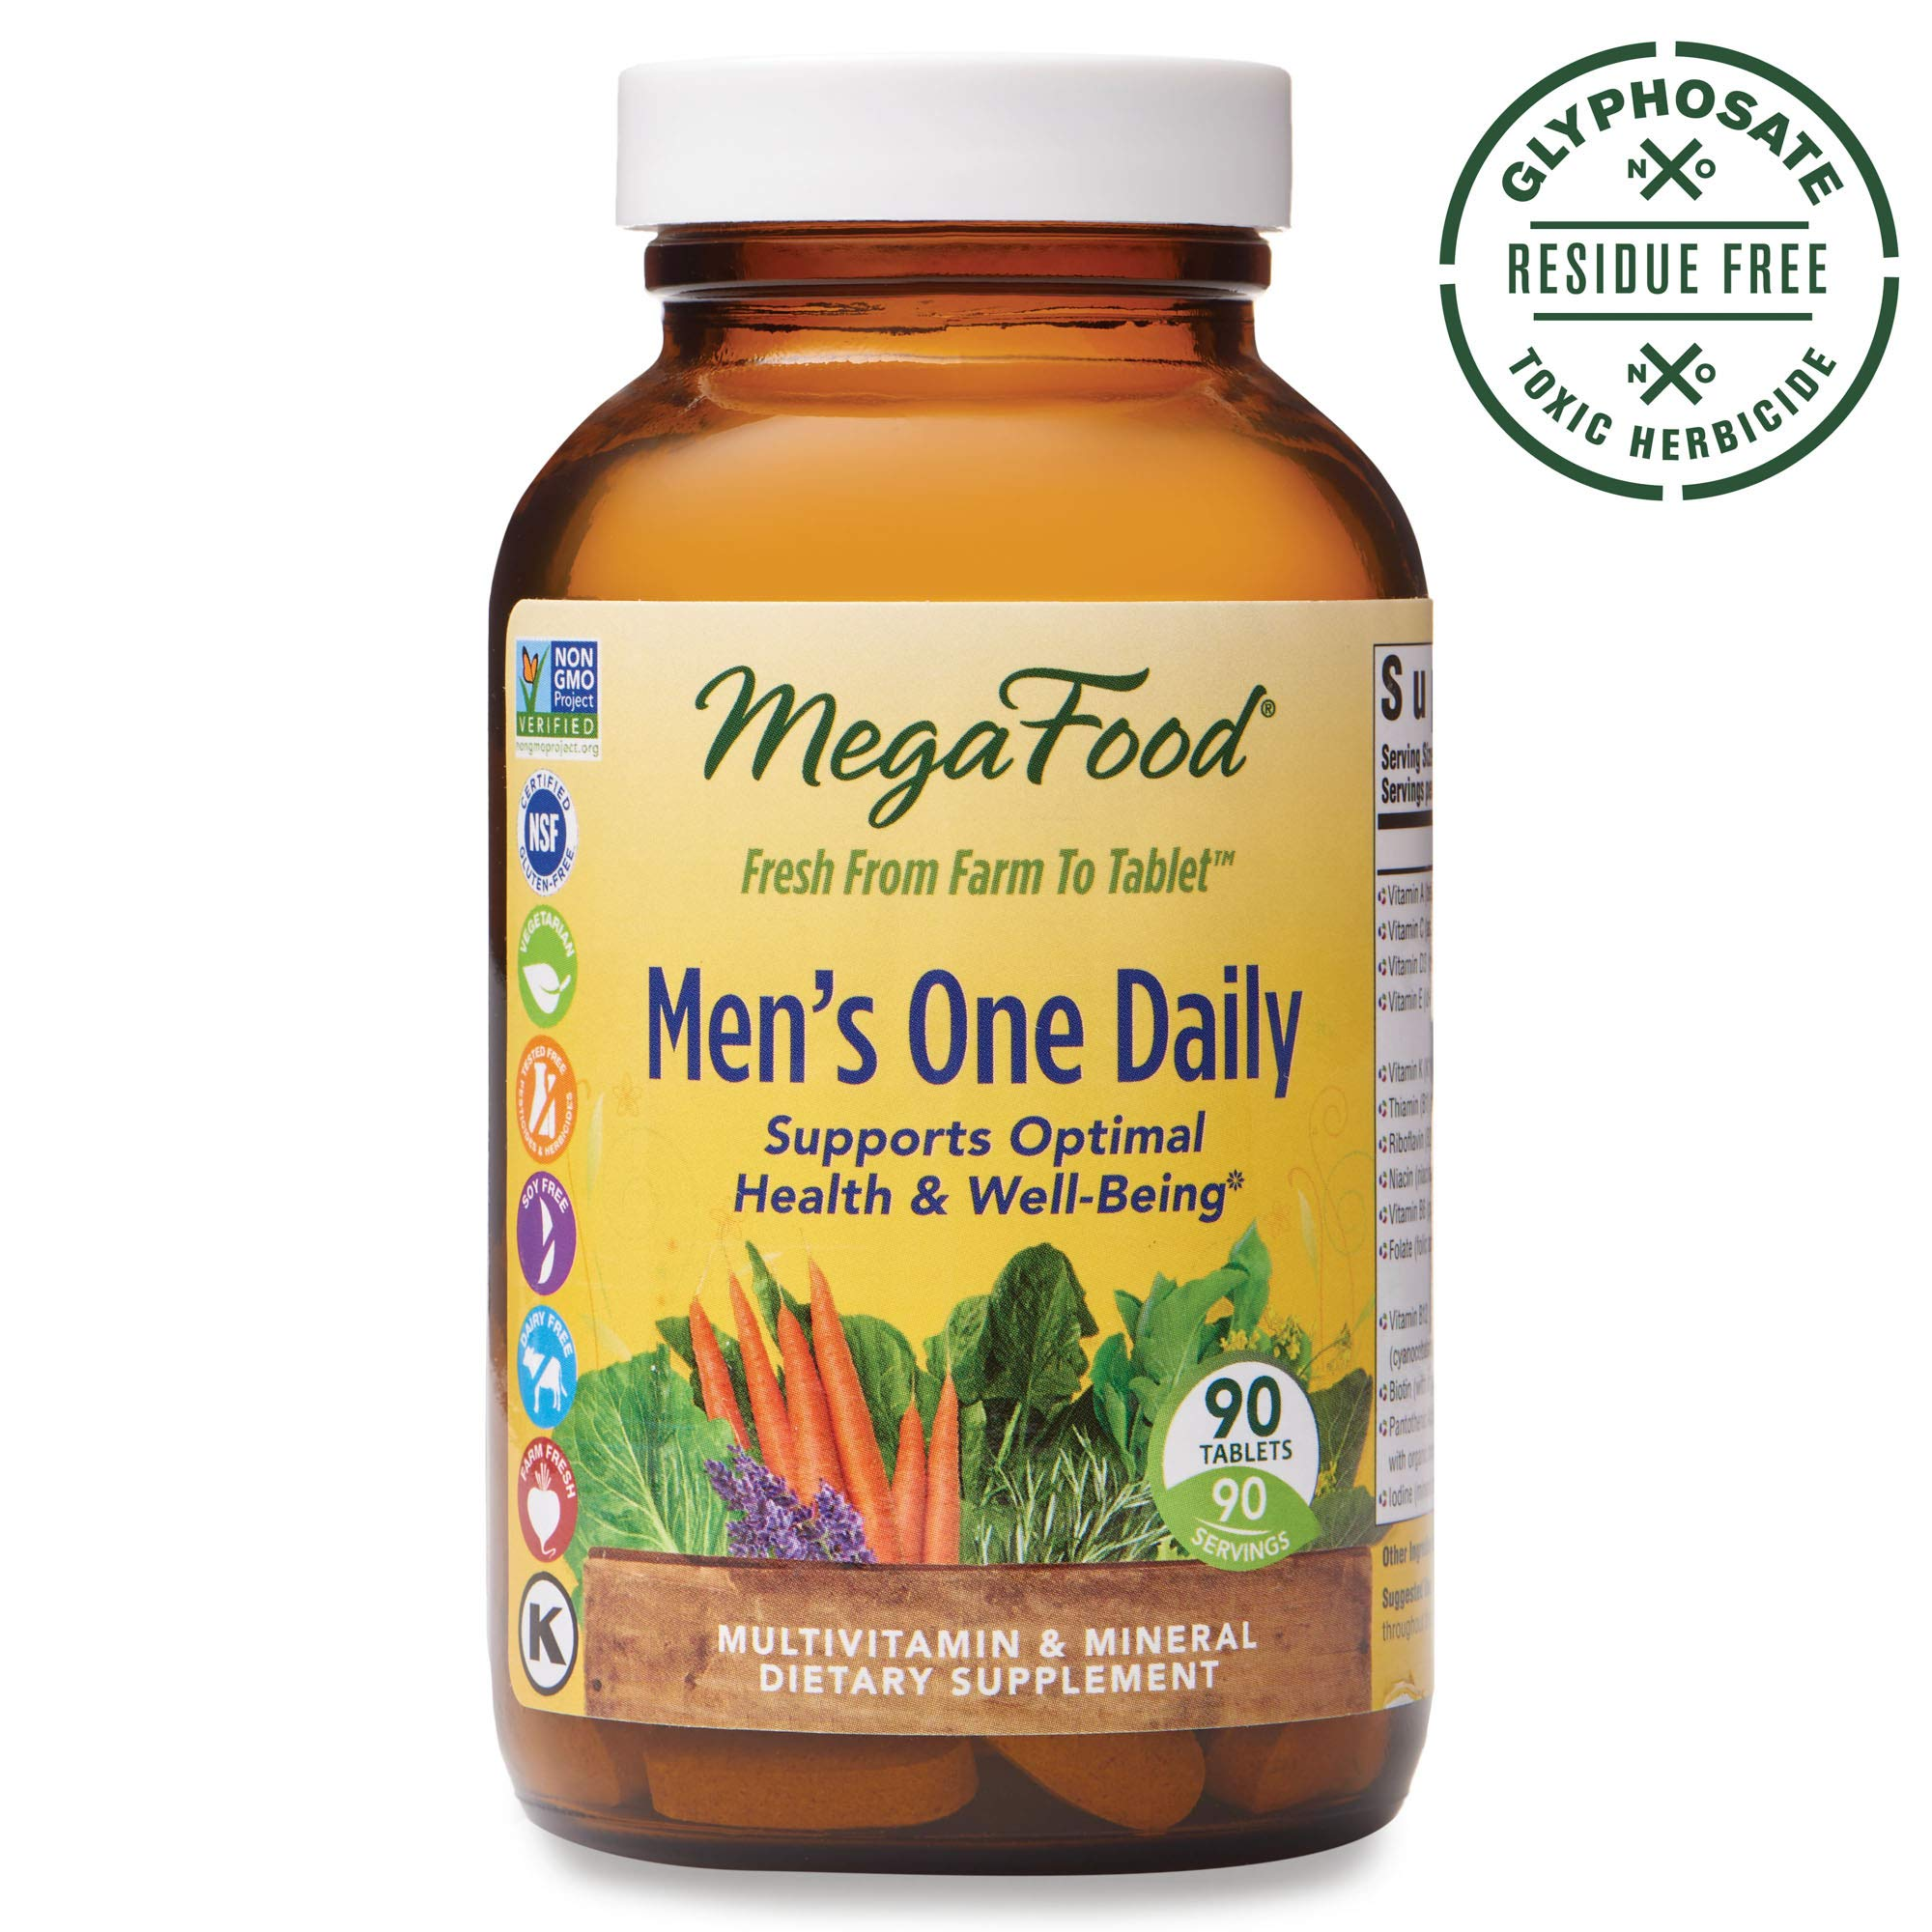 MegaFood, Men's One Daily, Daily Multivitamin and Mineral Dietary Supplement with Vitamins B, D and Zinc, Non-GMO, Vegetarian, 90 Tablets (90 Servings) (FFP) by MegaFood